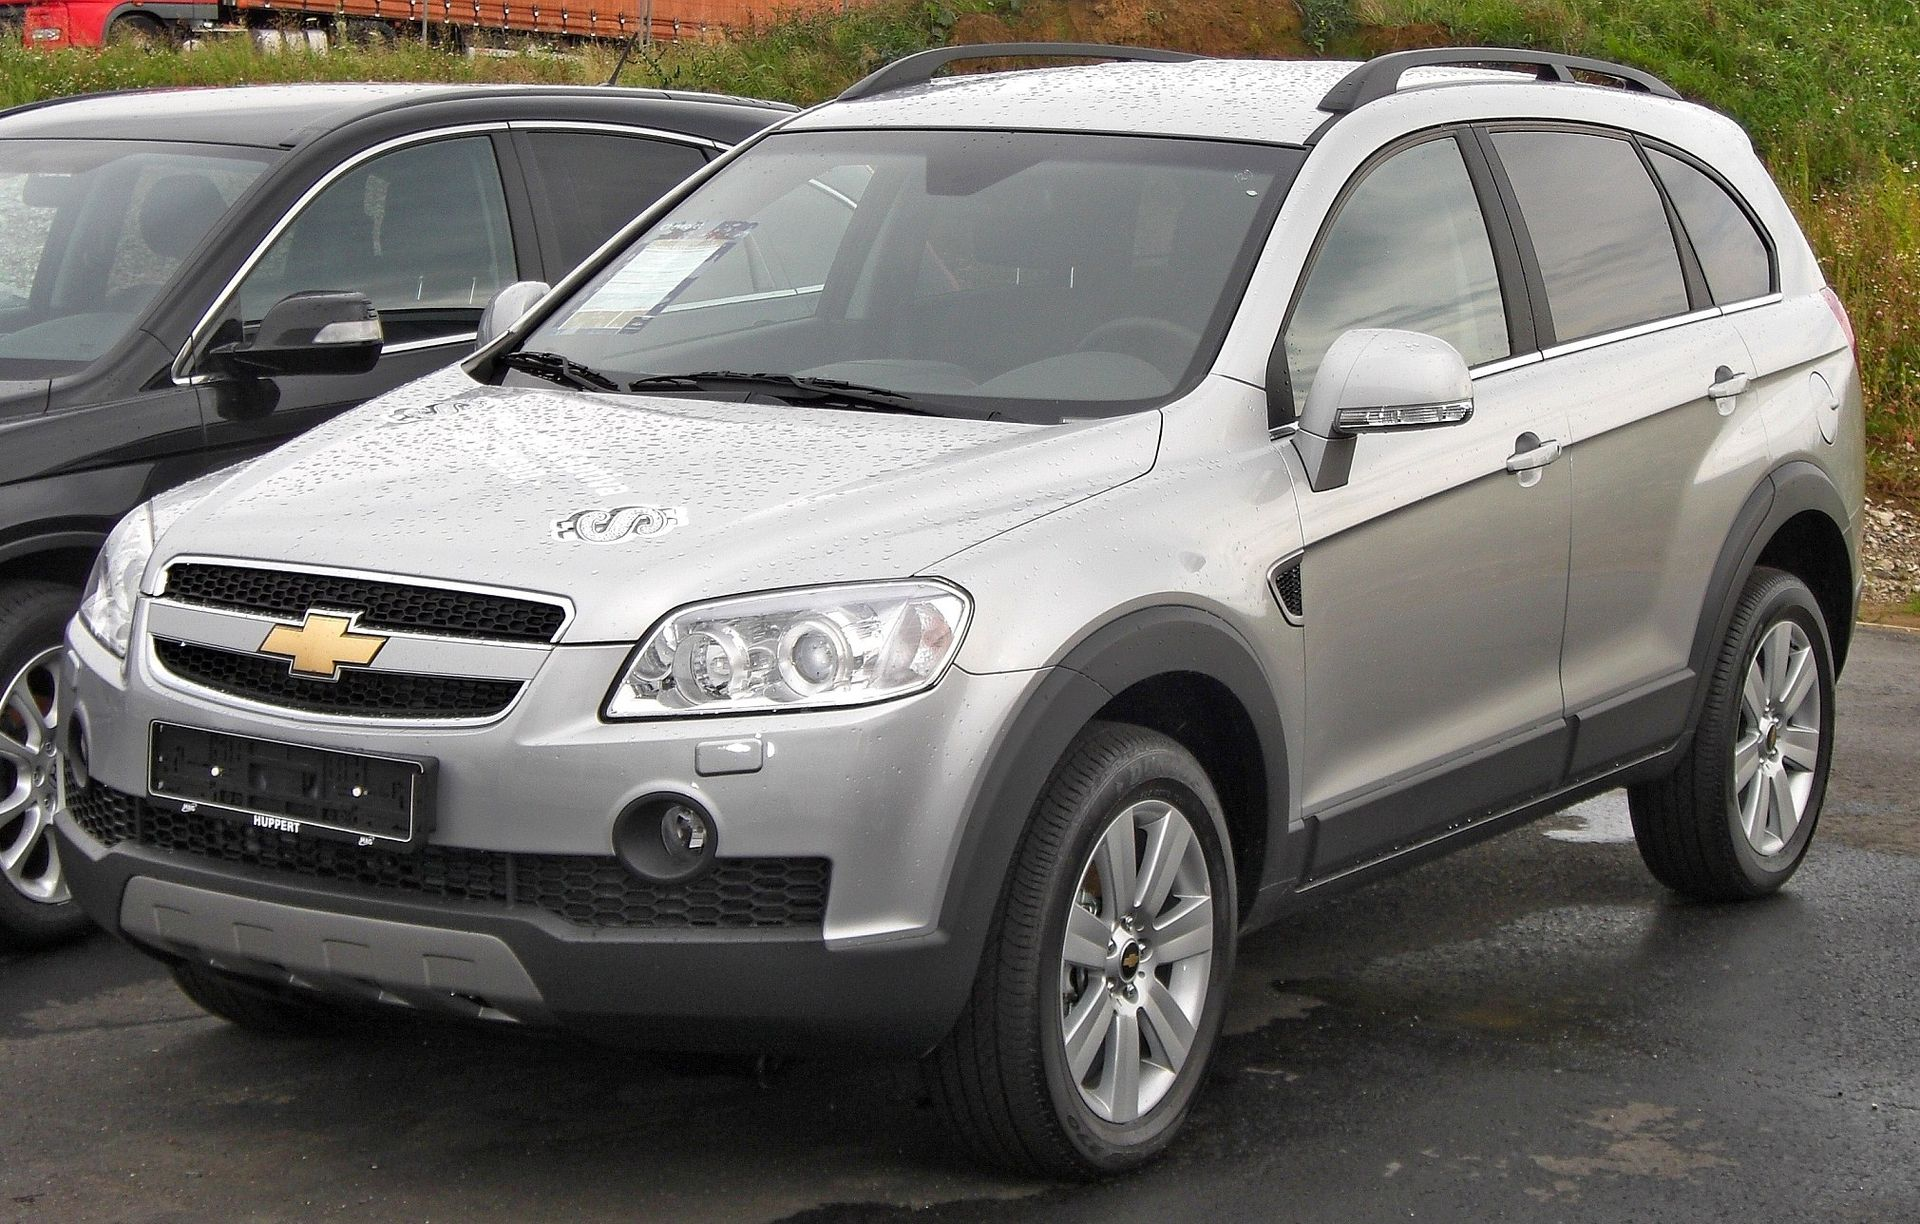 Chevrolet Captiva – Wikipedia, wolna encyklopedia